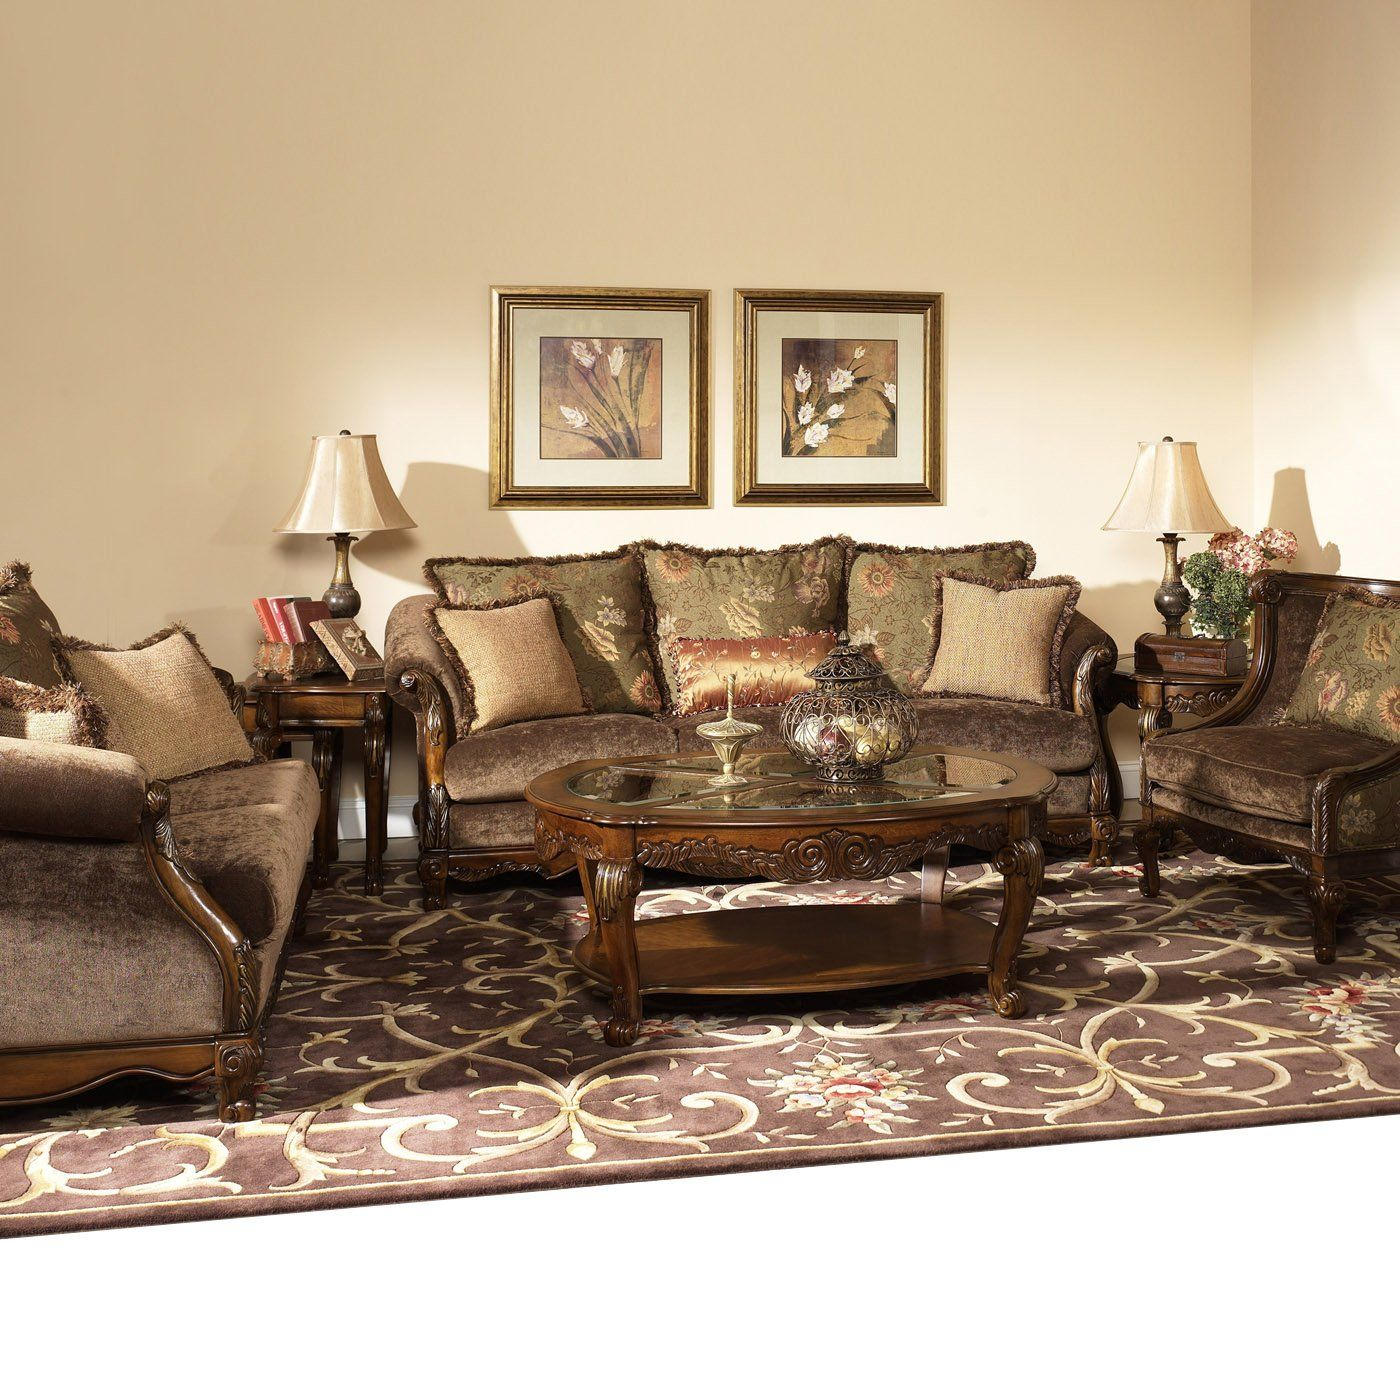 Living Room Seats Designs Livingroom Sets Fairmont Designs Furniture Repertoire Sofa